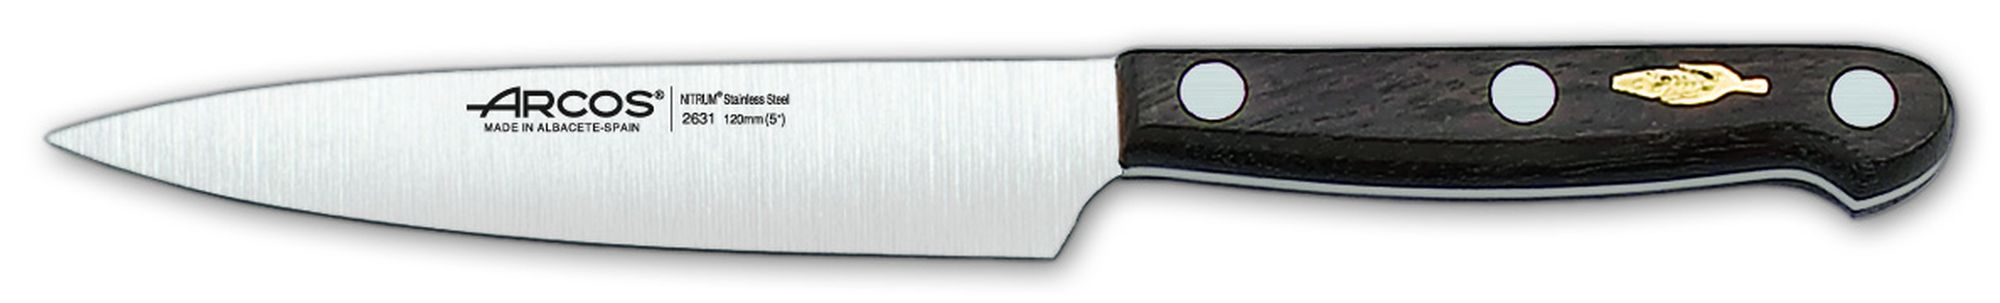 Vegetable Knife Arcos ref.: 263100